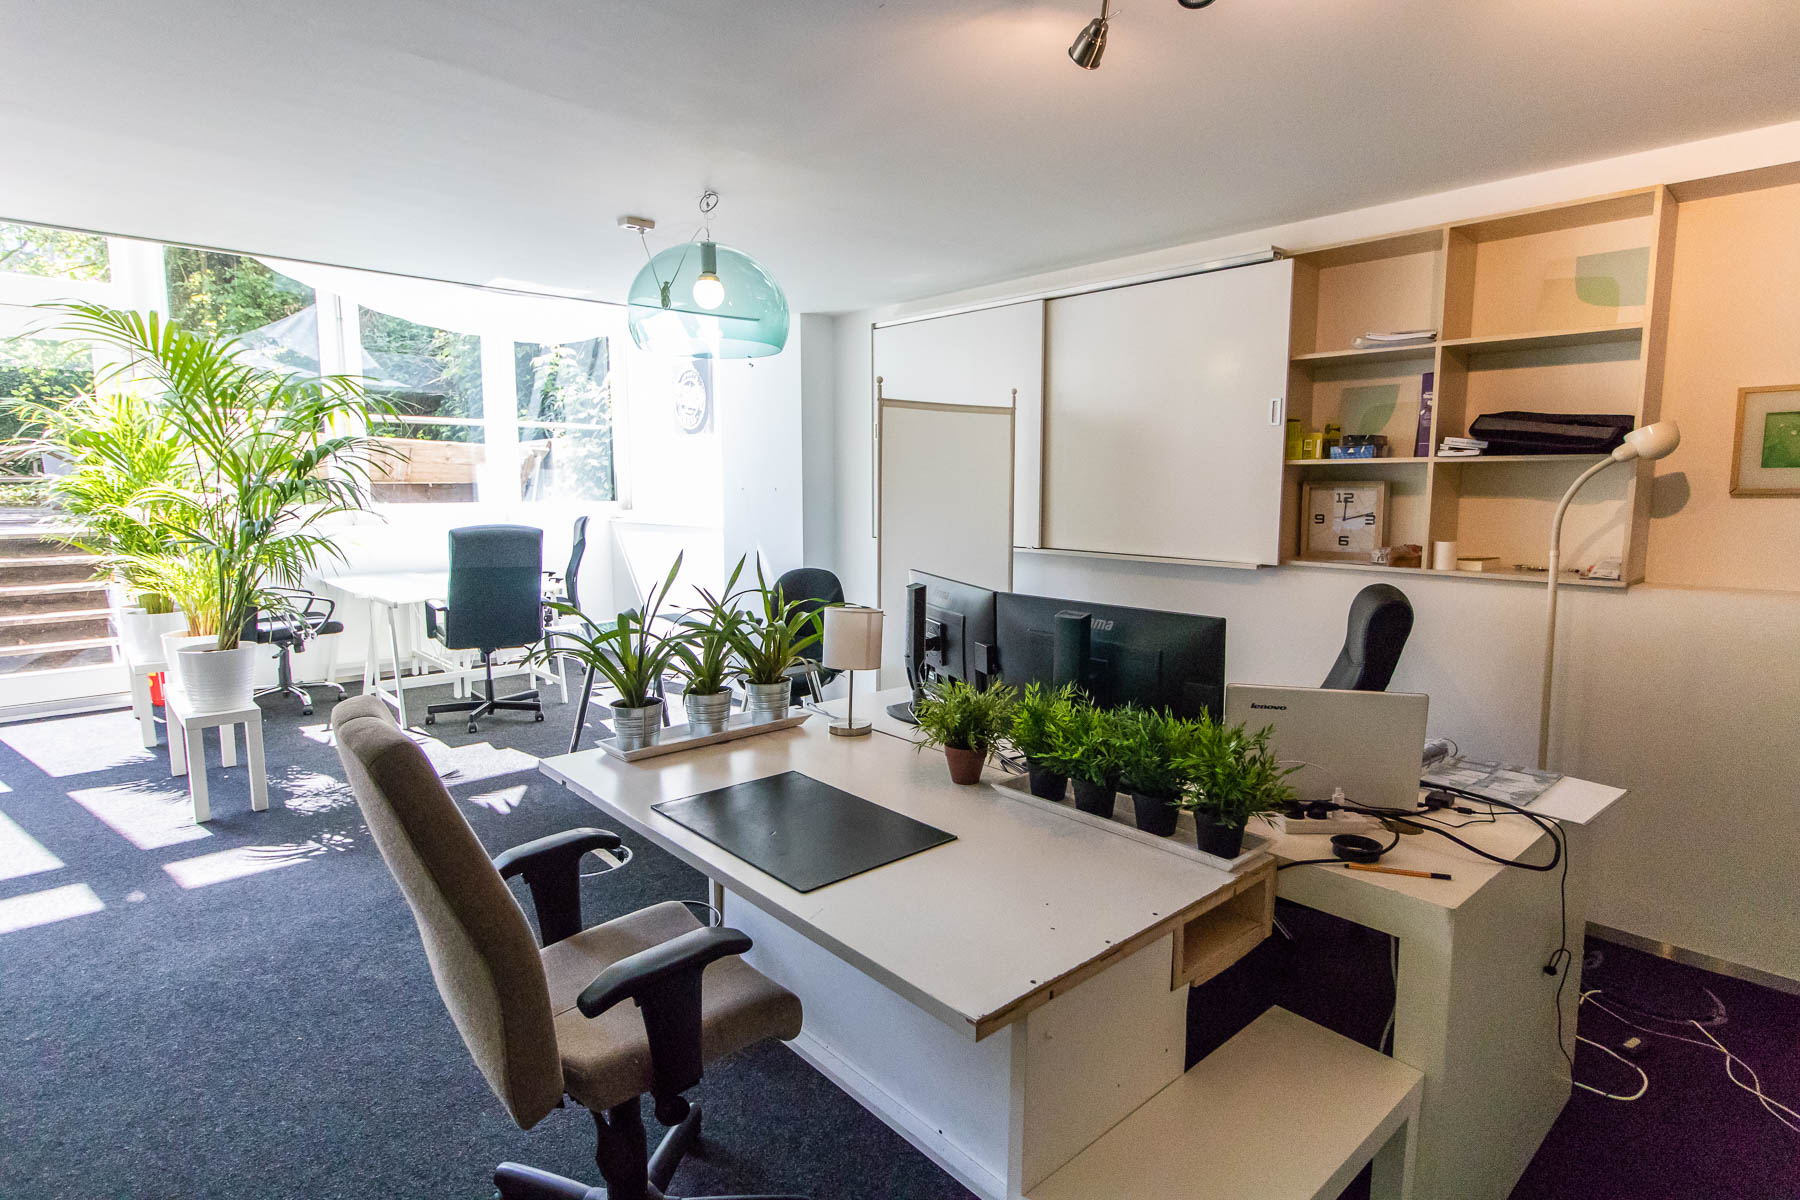 Rent office space Overtoom 47, Amsterdam (20)